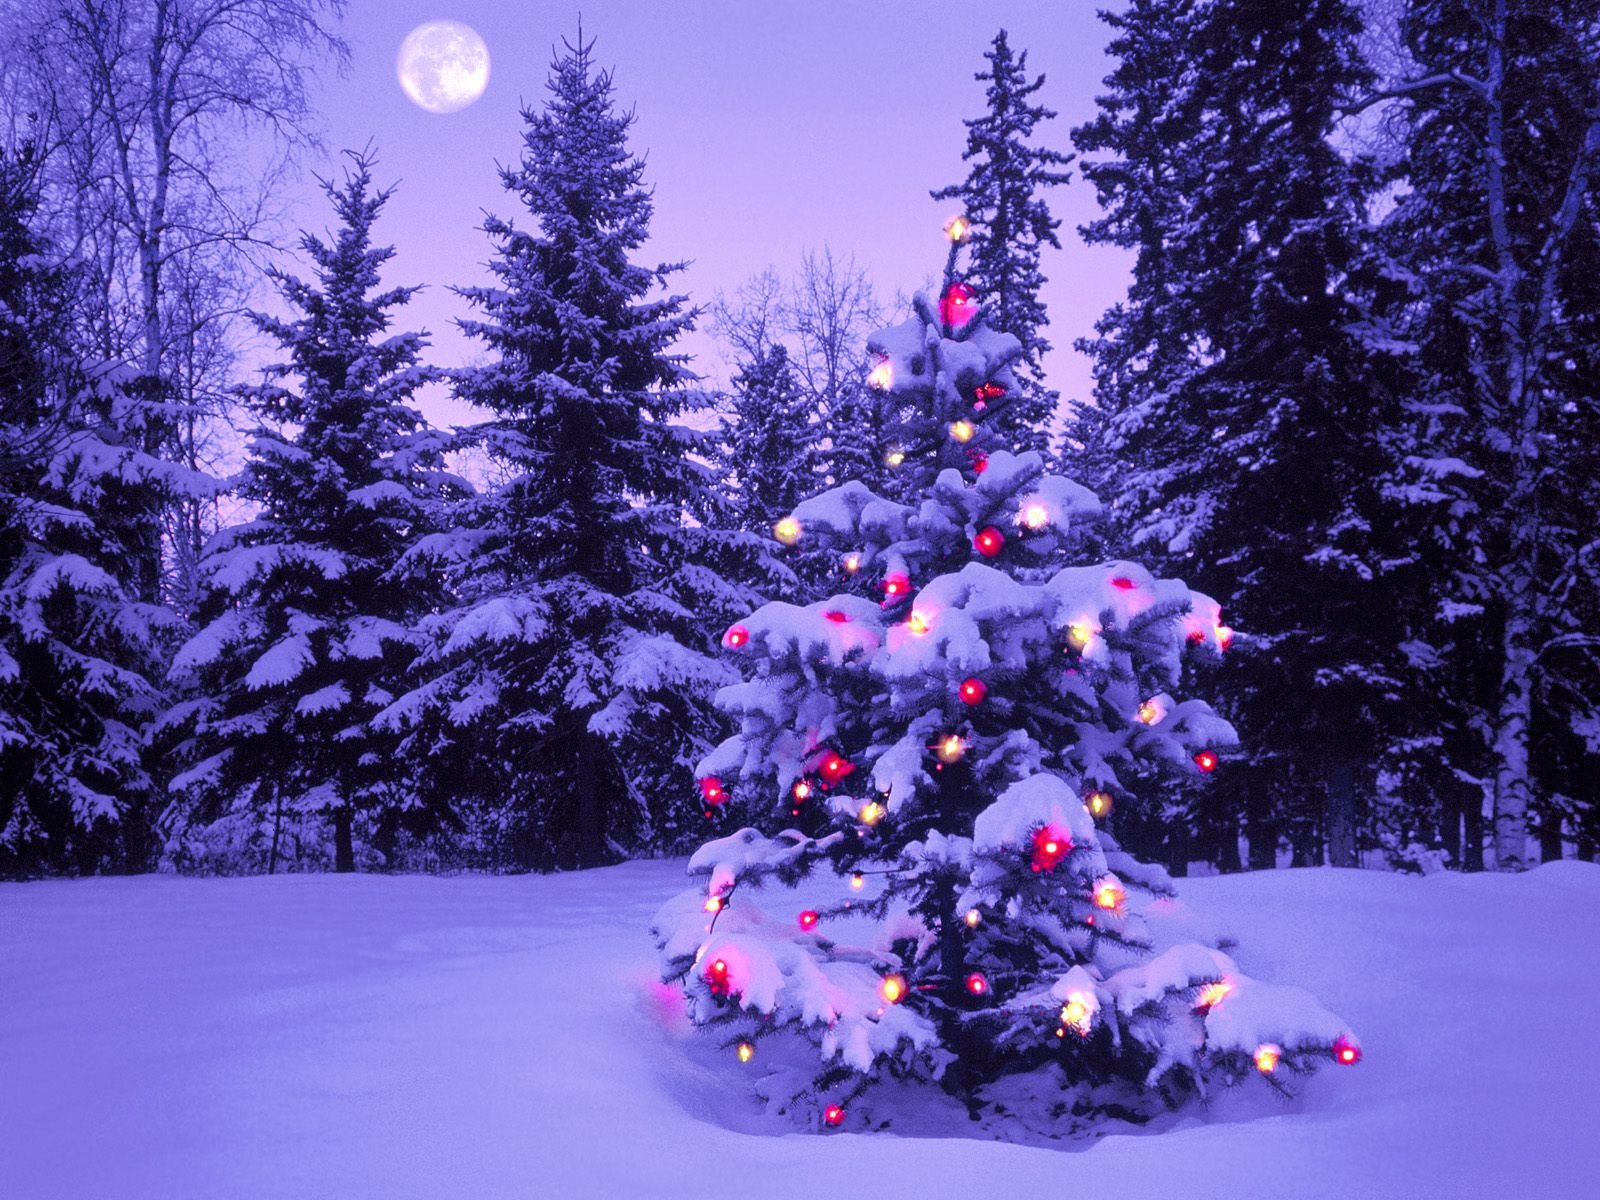 hd wallpapers: snow christmas wallpapers